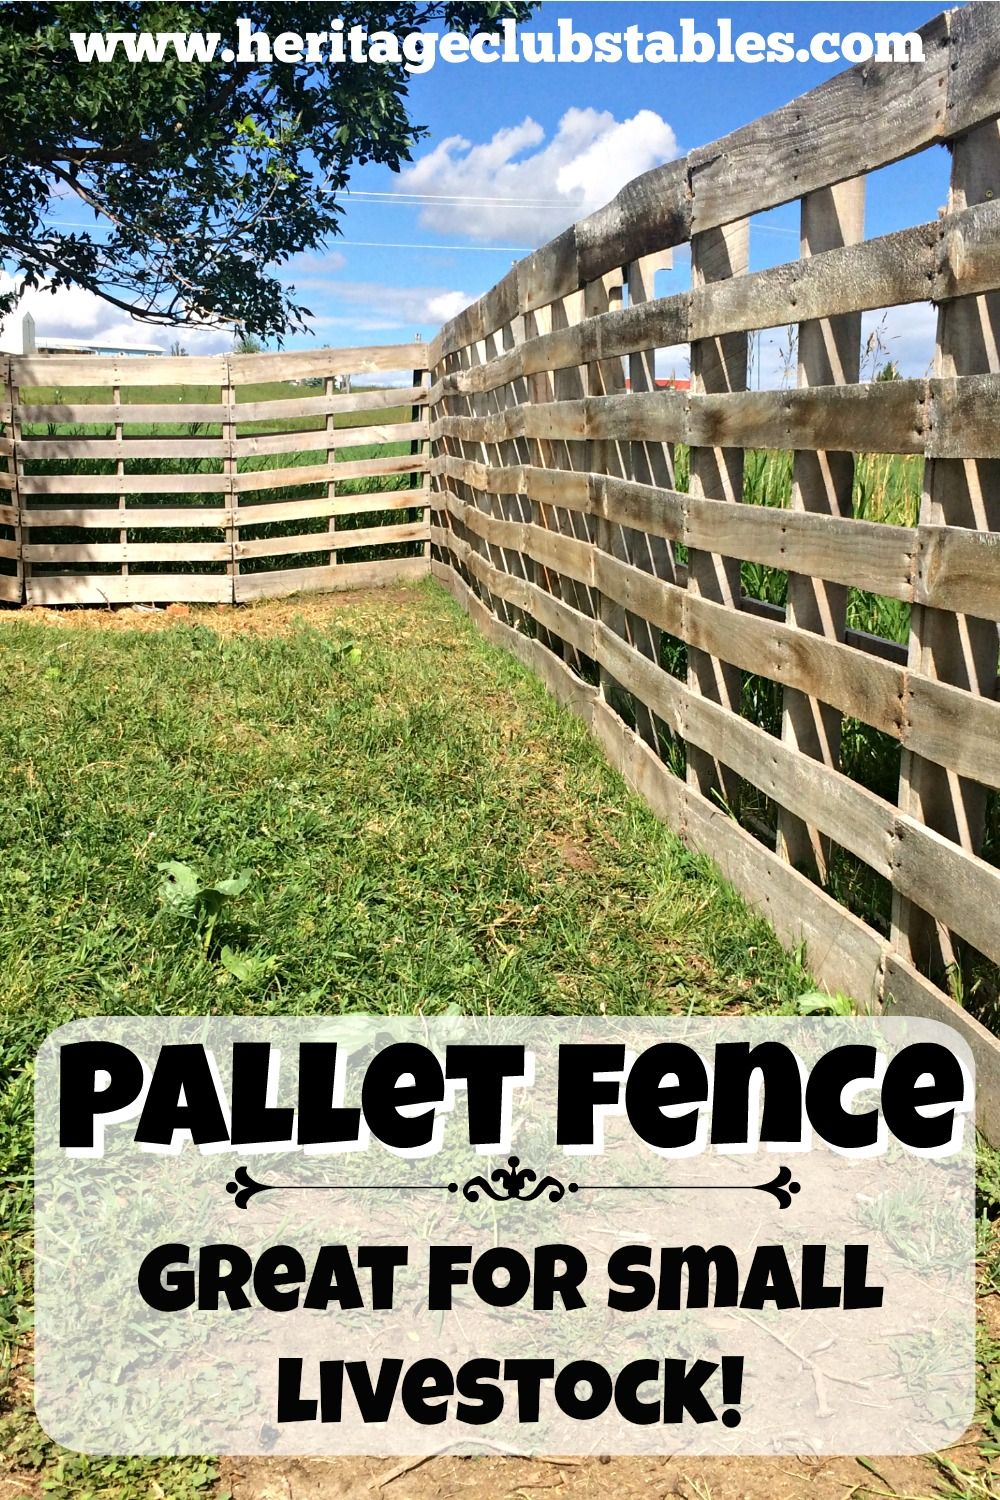 Pallet fence reasons why a pallet fence makes the best fence